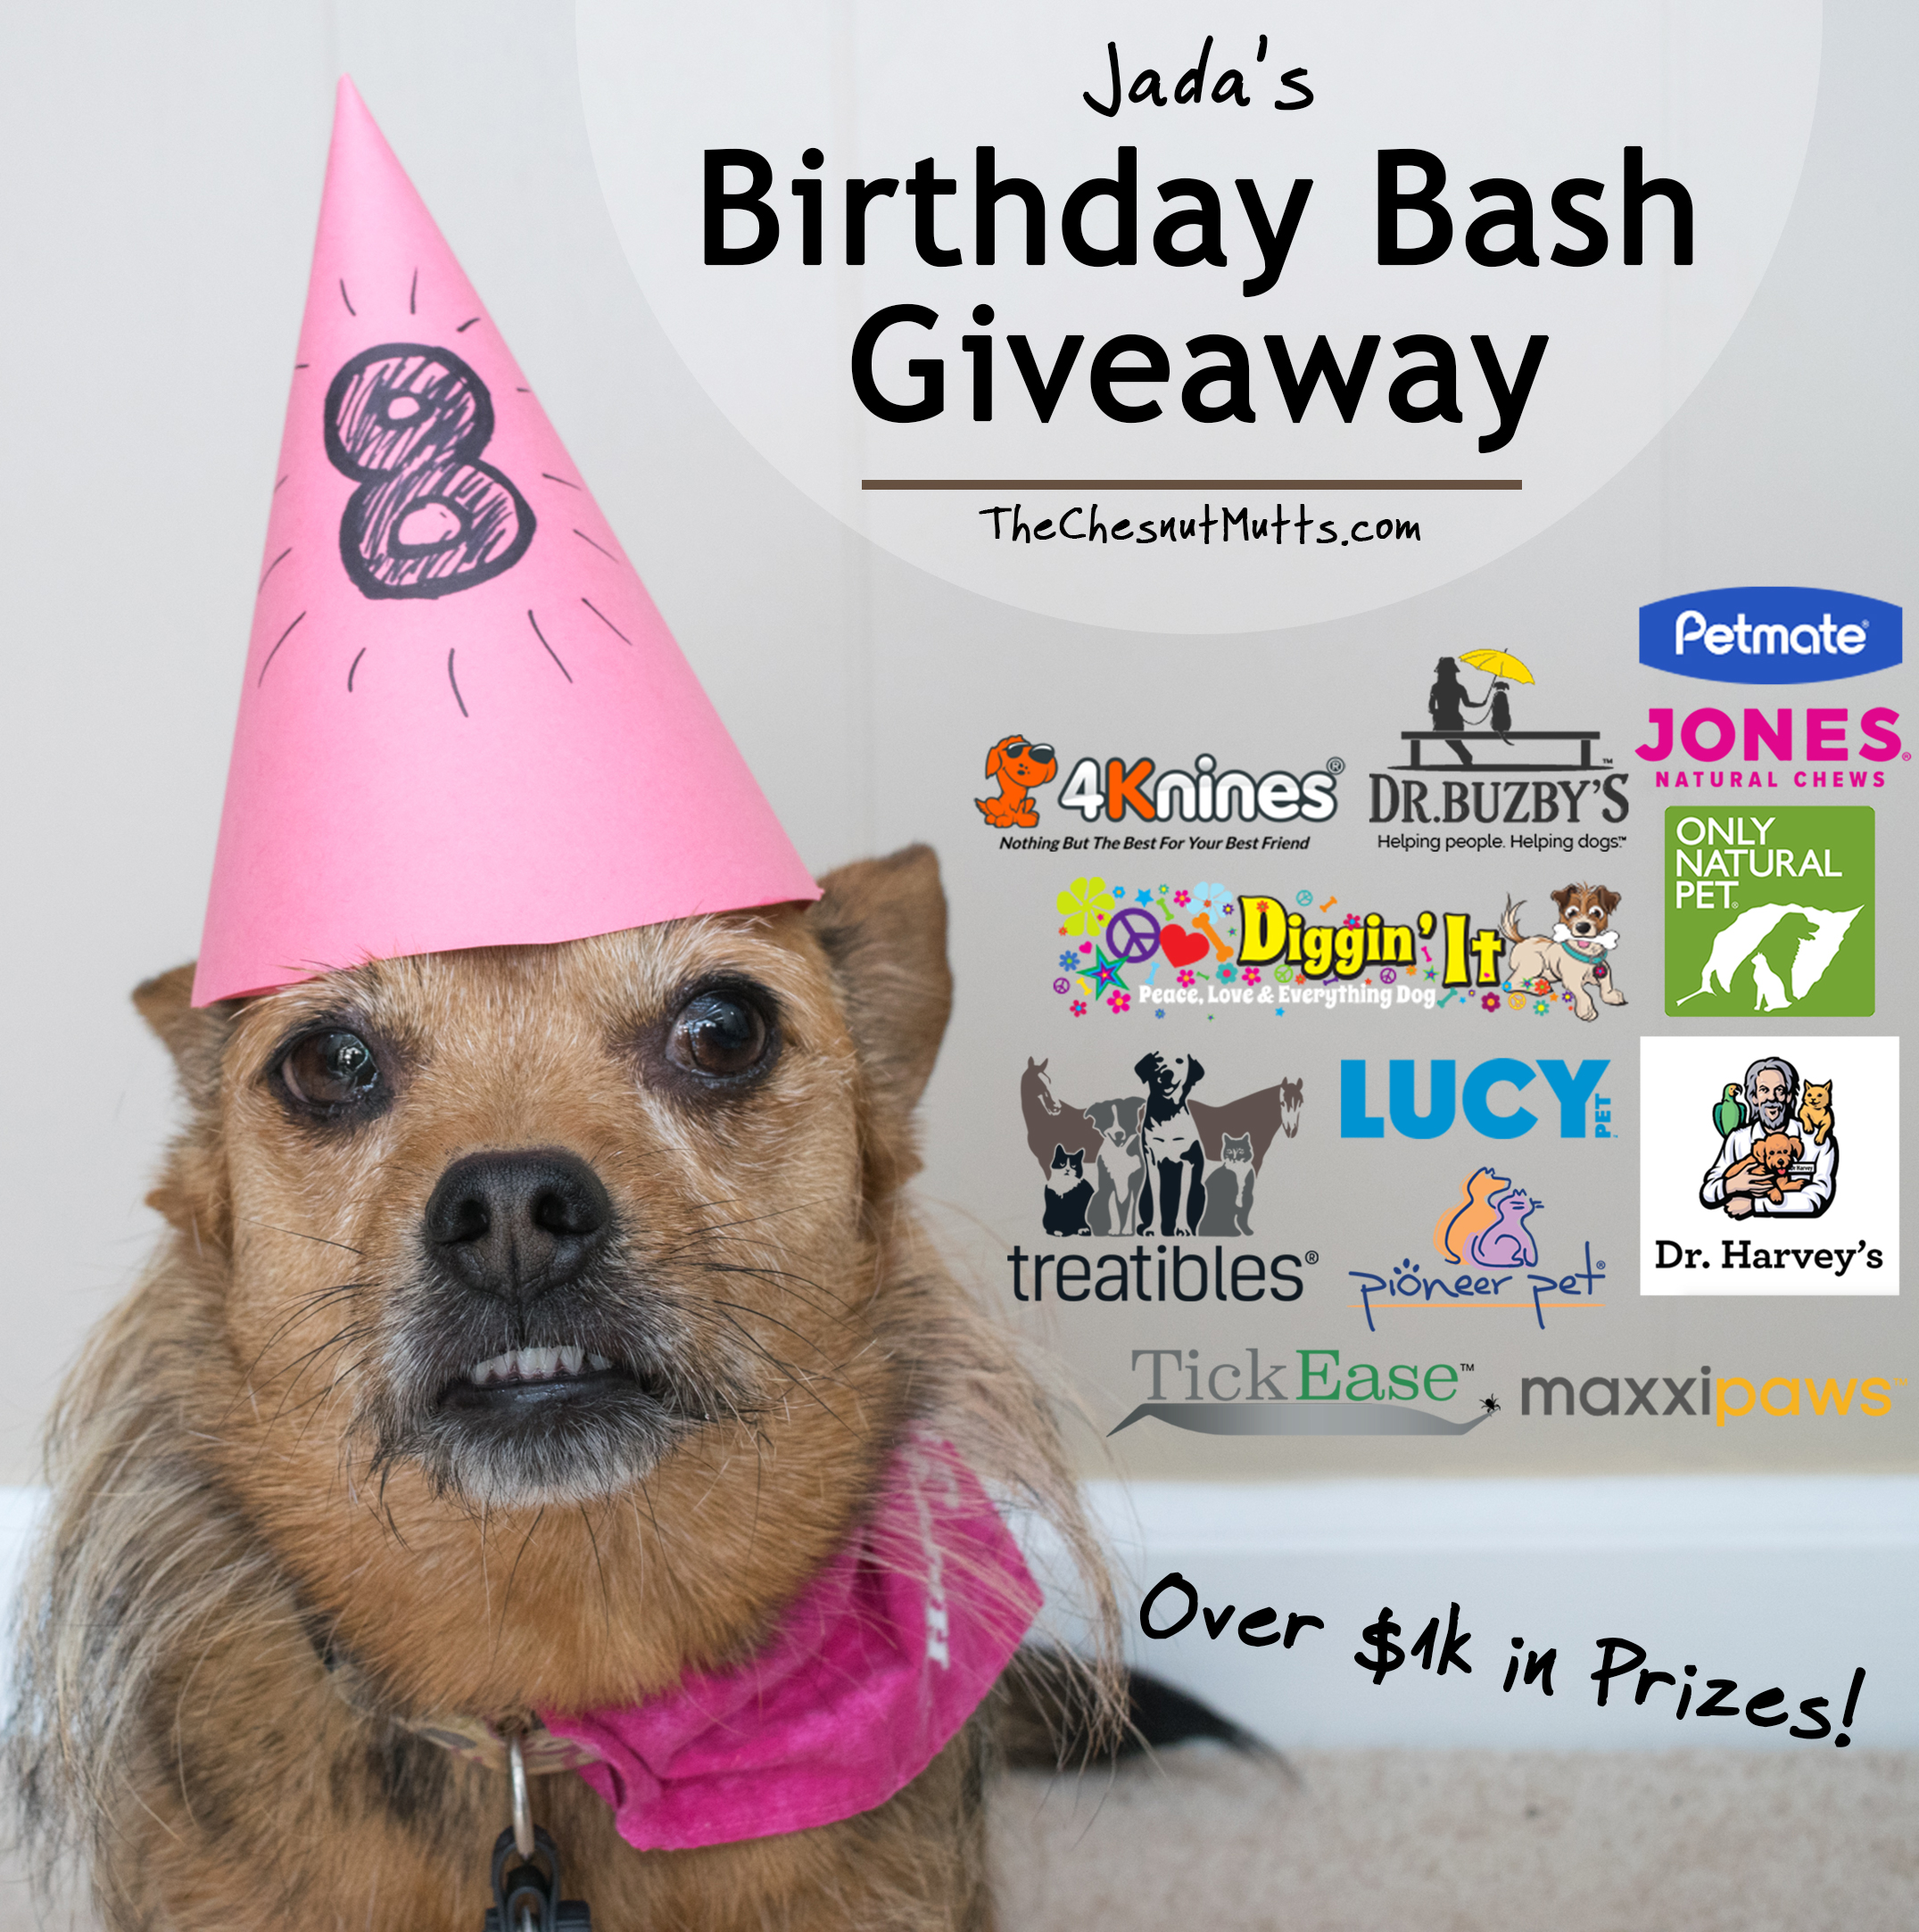 Enter the TheChesnutMutts.com Birthday Bash Dog $1,000 Giveaway for your chance to win over $1,000 in prizes for you and your dog including dog food, treats, supplements, toys, and more!